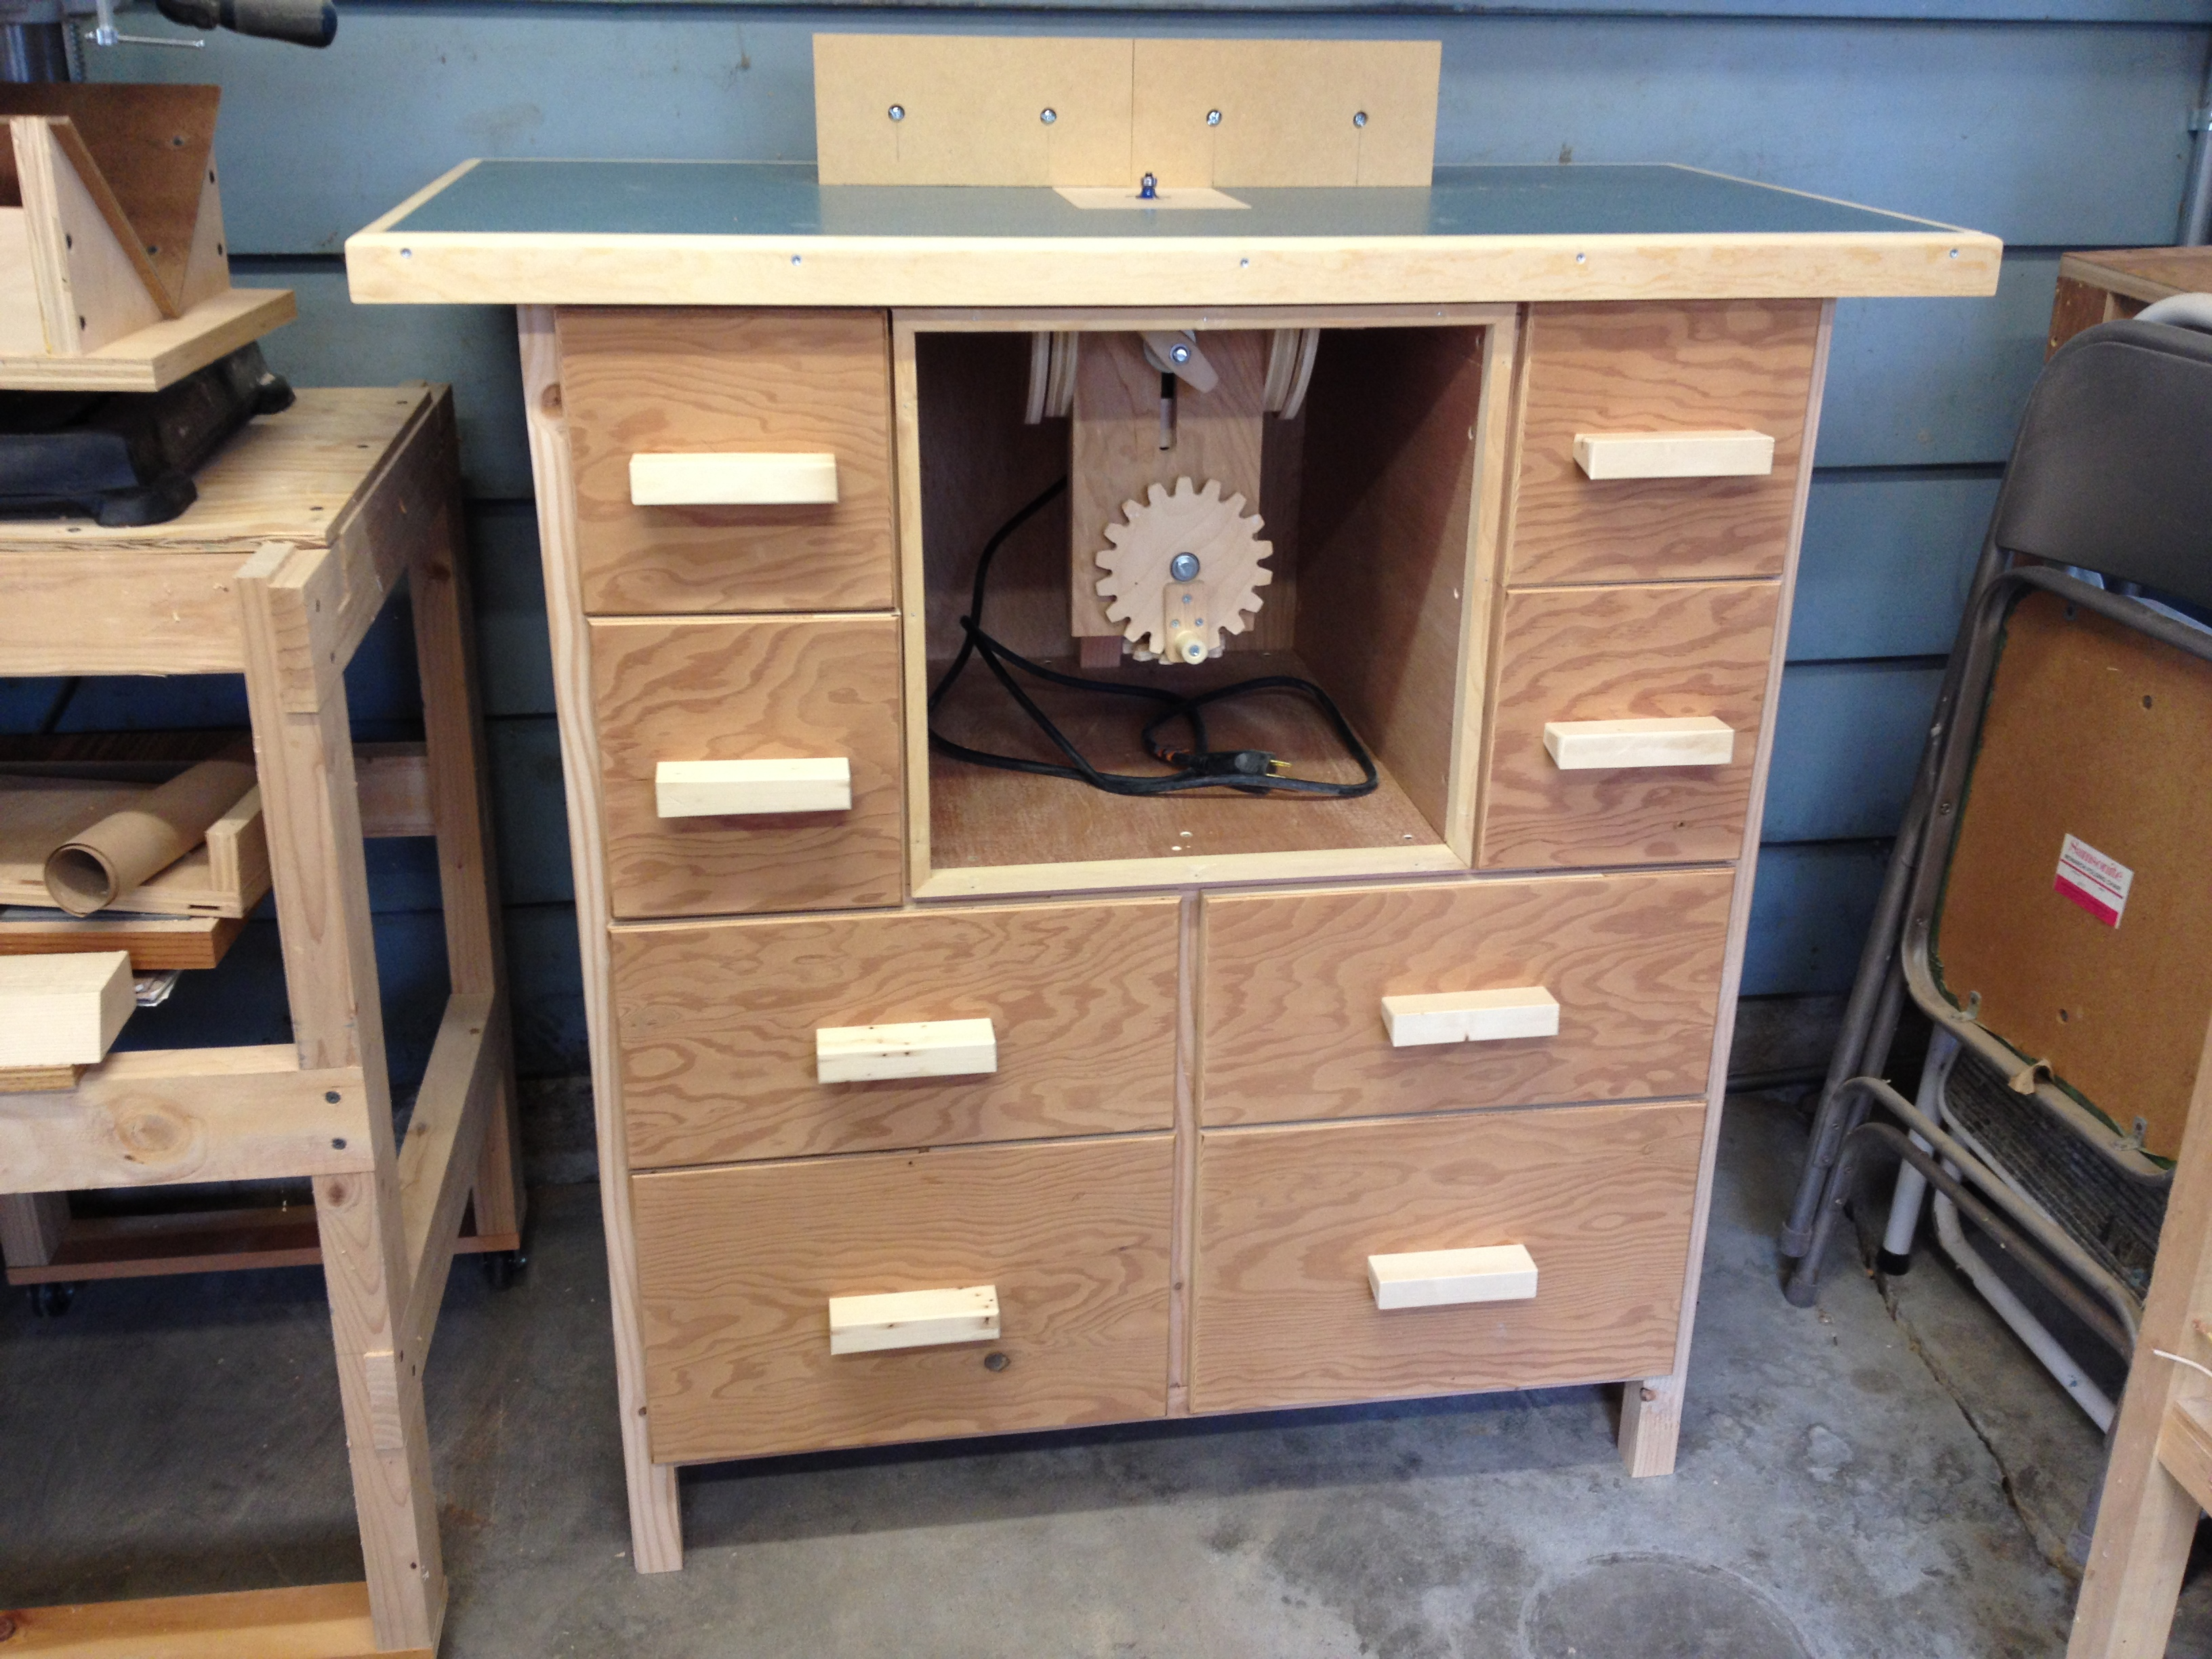 New Wood Shop - Setting up a new wood shop in my garage on Cool Small Woodworking Projects  id=34812